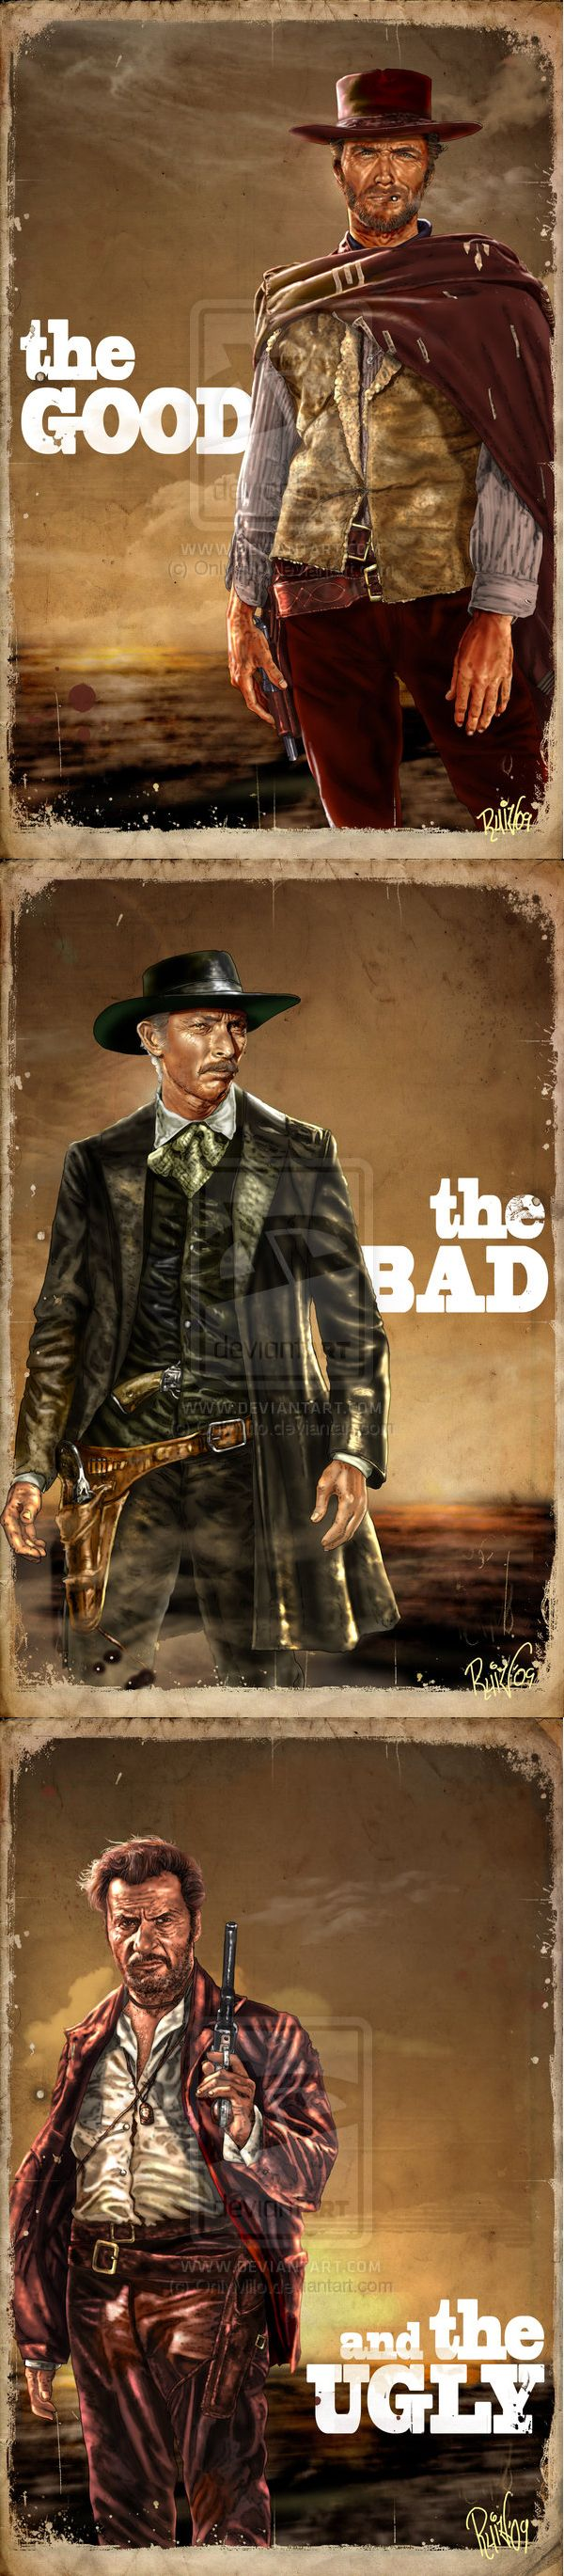 The Good, the Bad and the Ugly by Only Milo